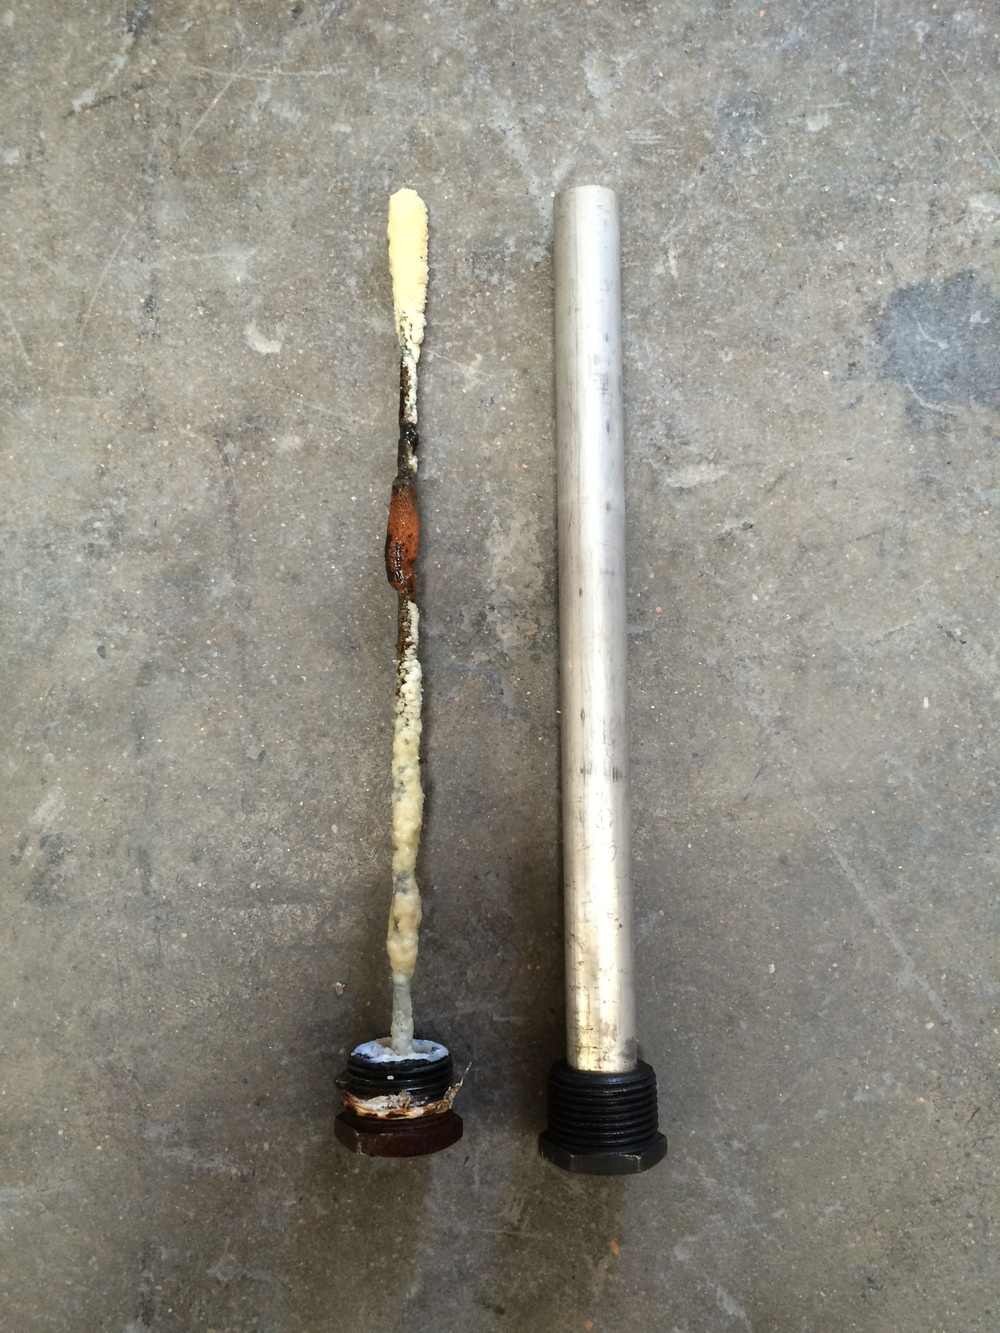 Anode rod 1 year old -vs- new one